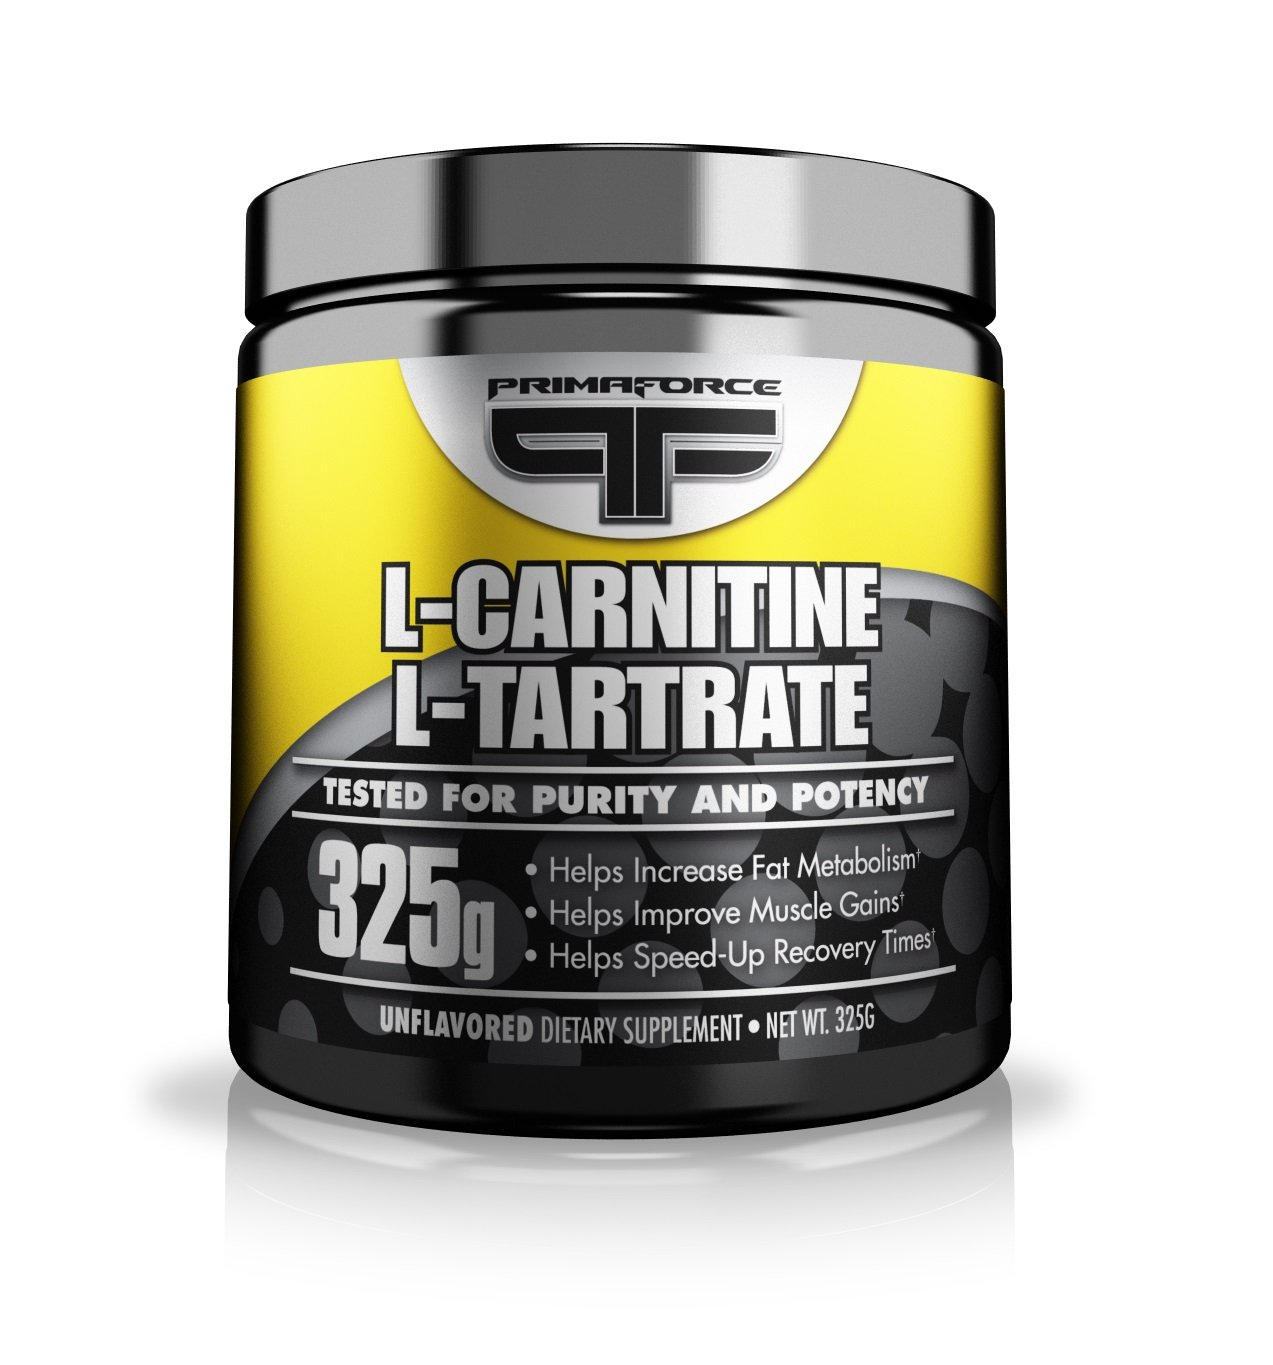 PrimaForce L-Carnitine L-Tartrate Powder Supplement - Enhances Workout Performance / Promotes Fat Burning / Speeds Workout Recovery - 325 Grams